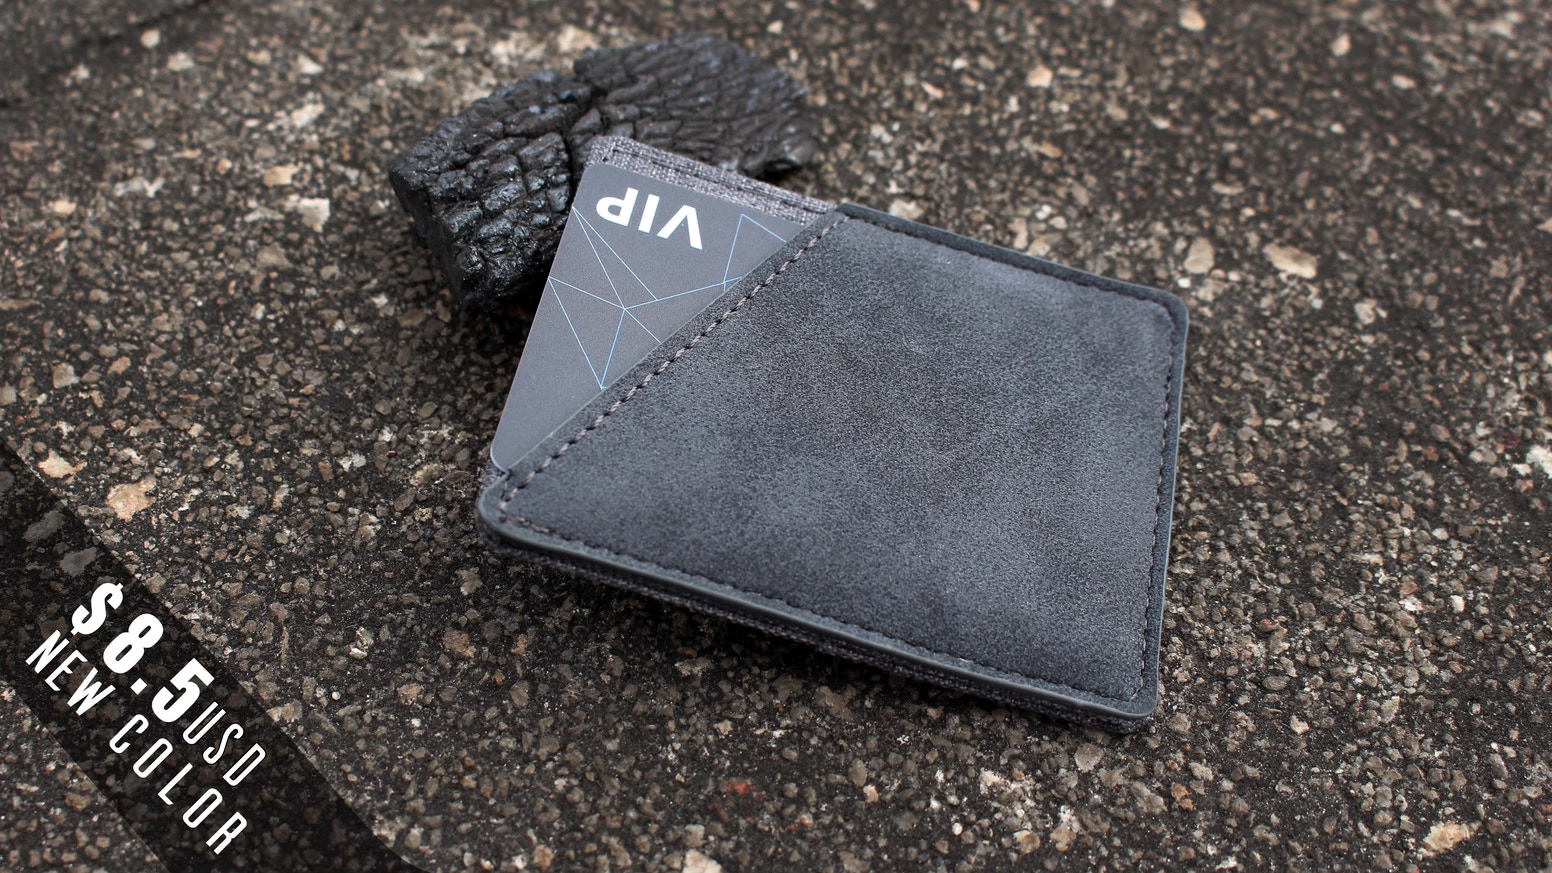 Minix is back with more color options. Still the best canvas slim wallet :)